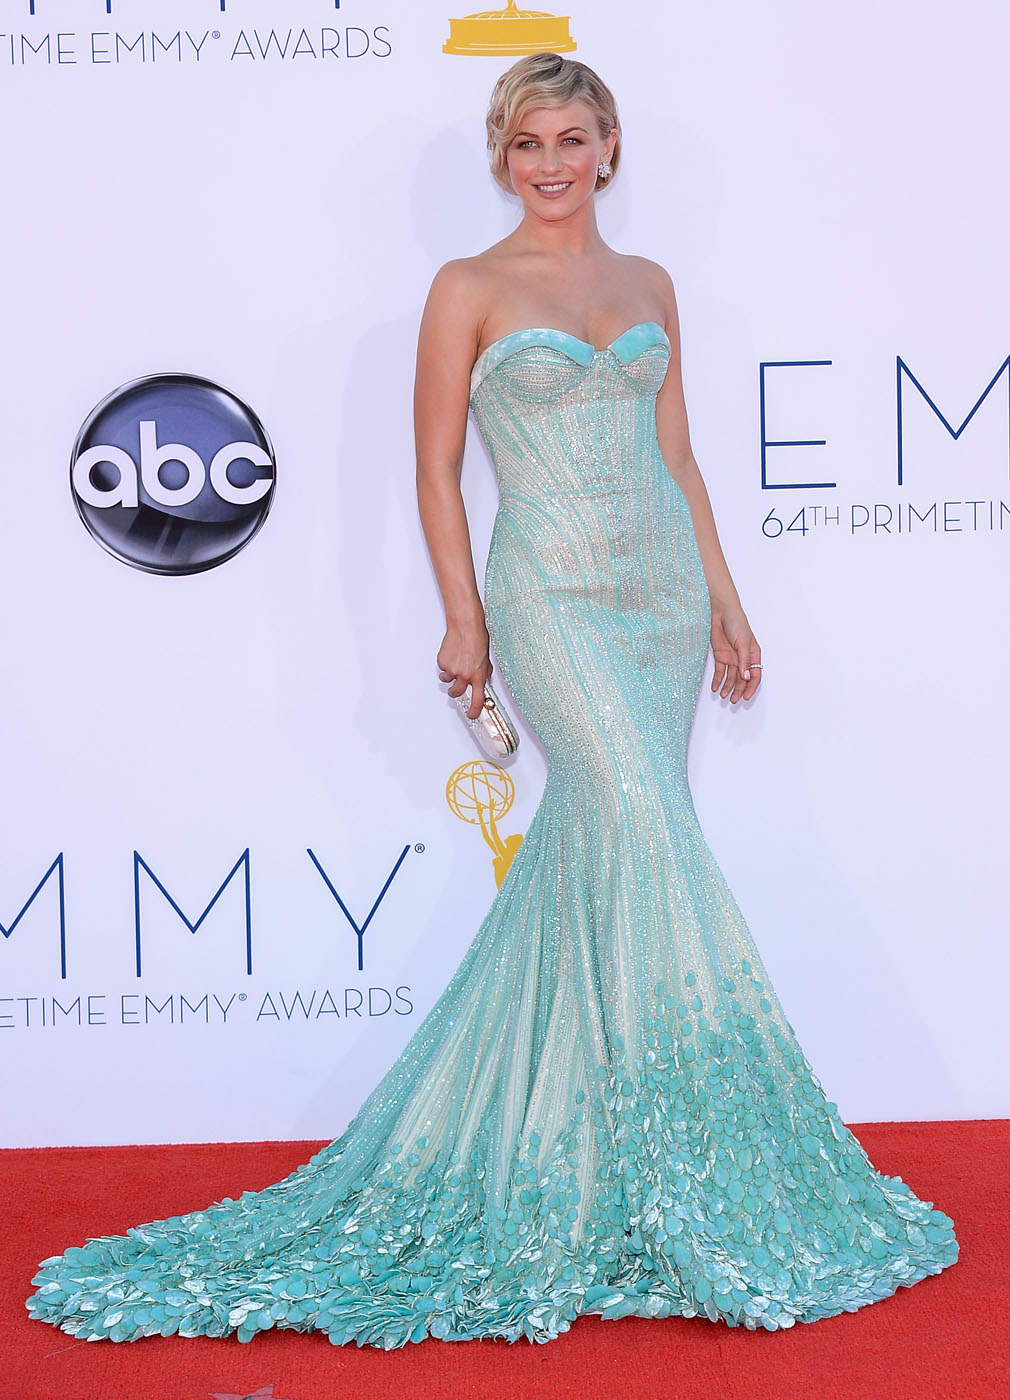 Julianne Hough - 2012 Emmy Awards, Red Carpet Looks